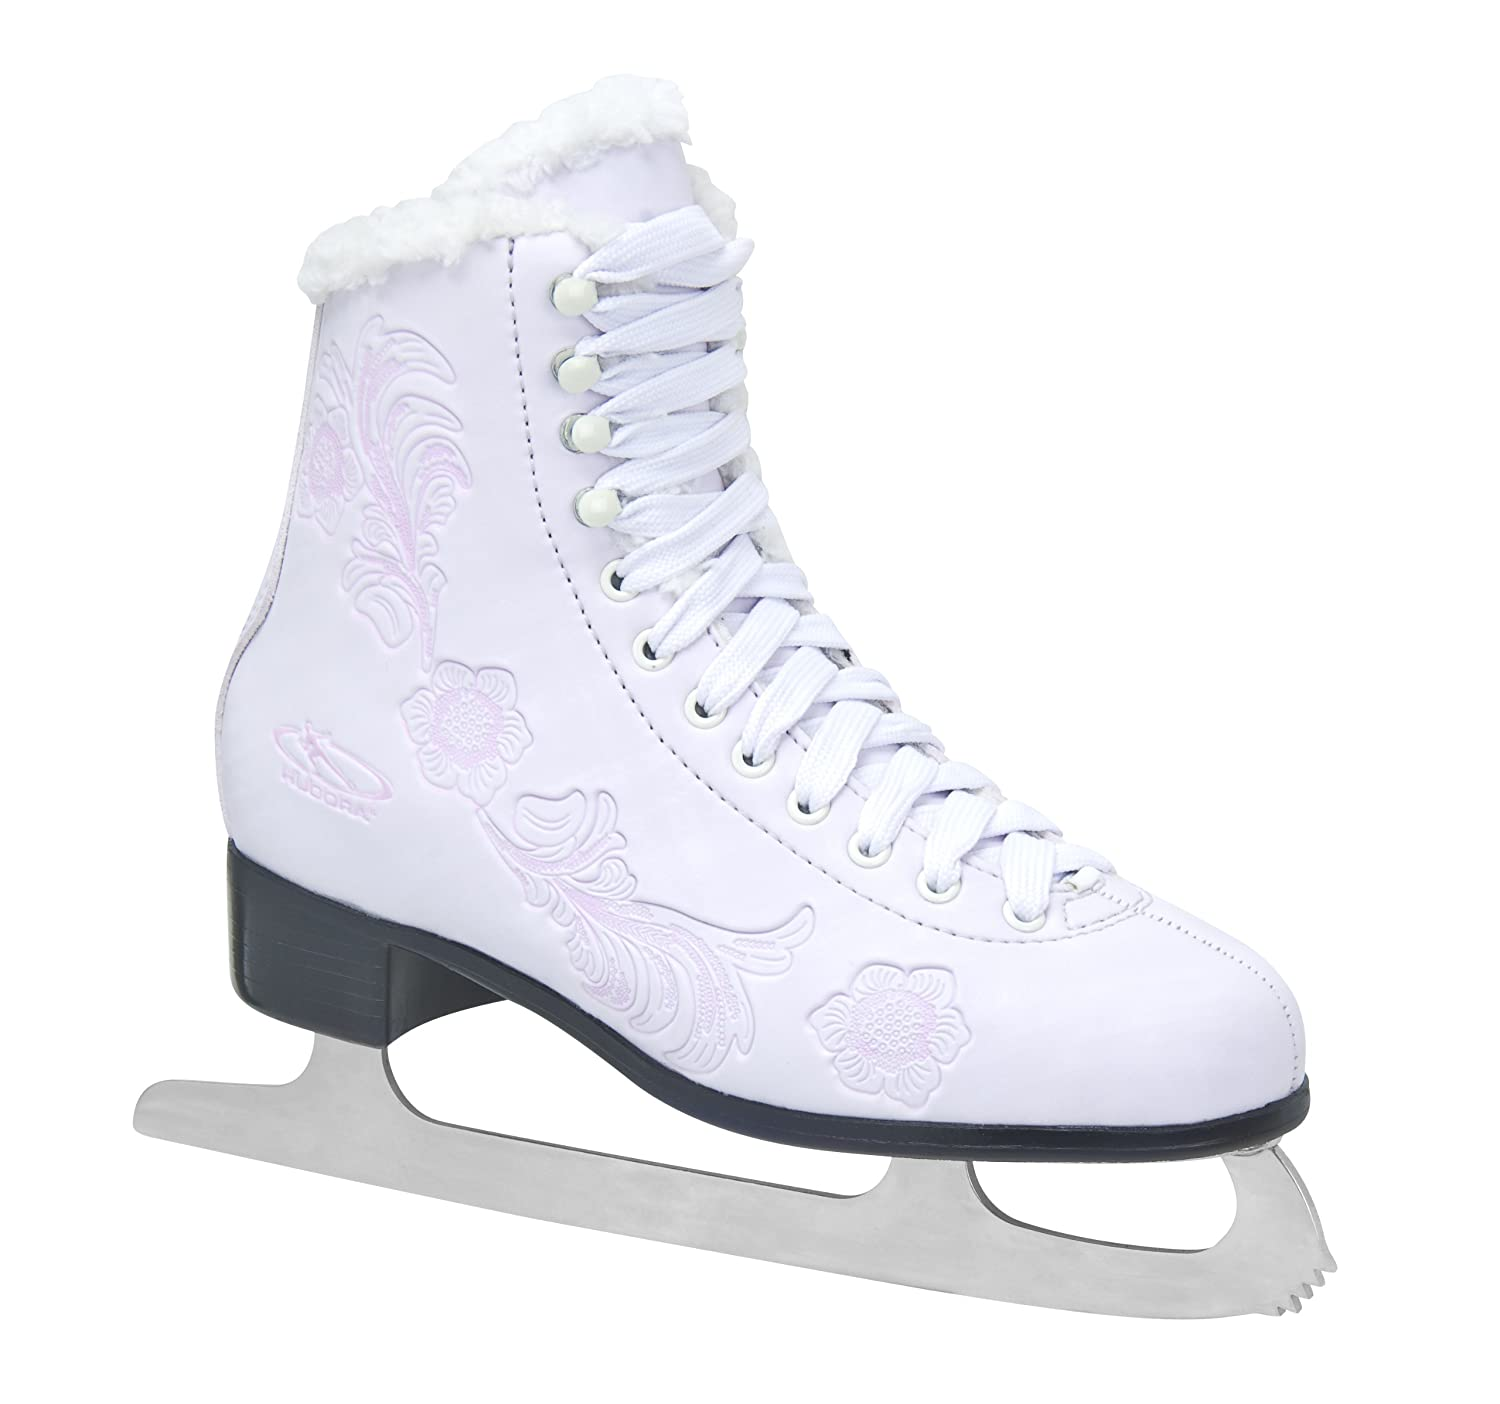 For sale craps tables used